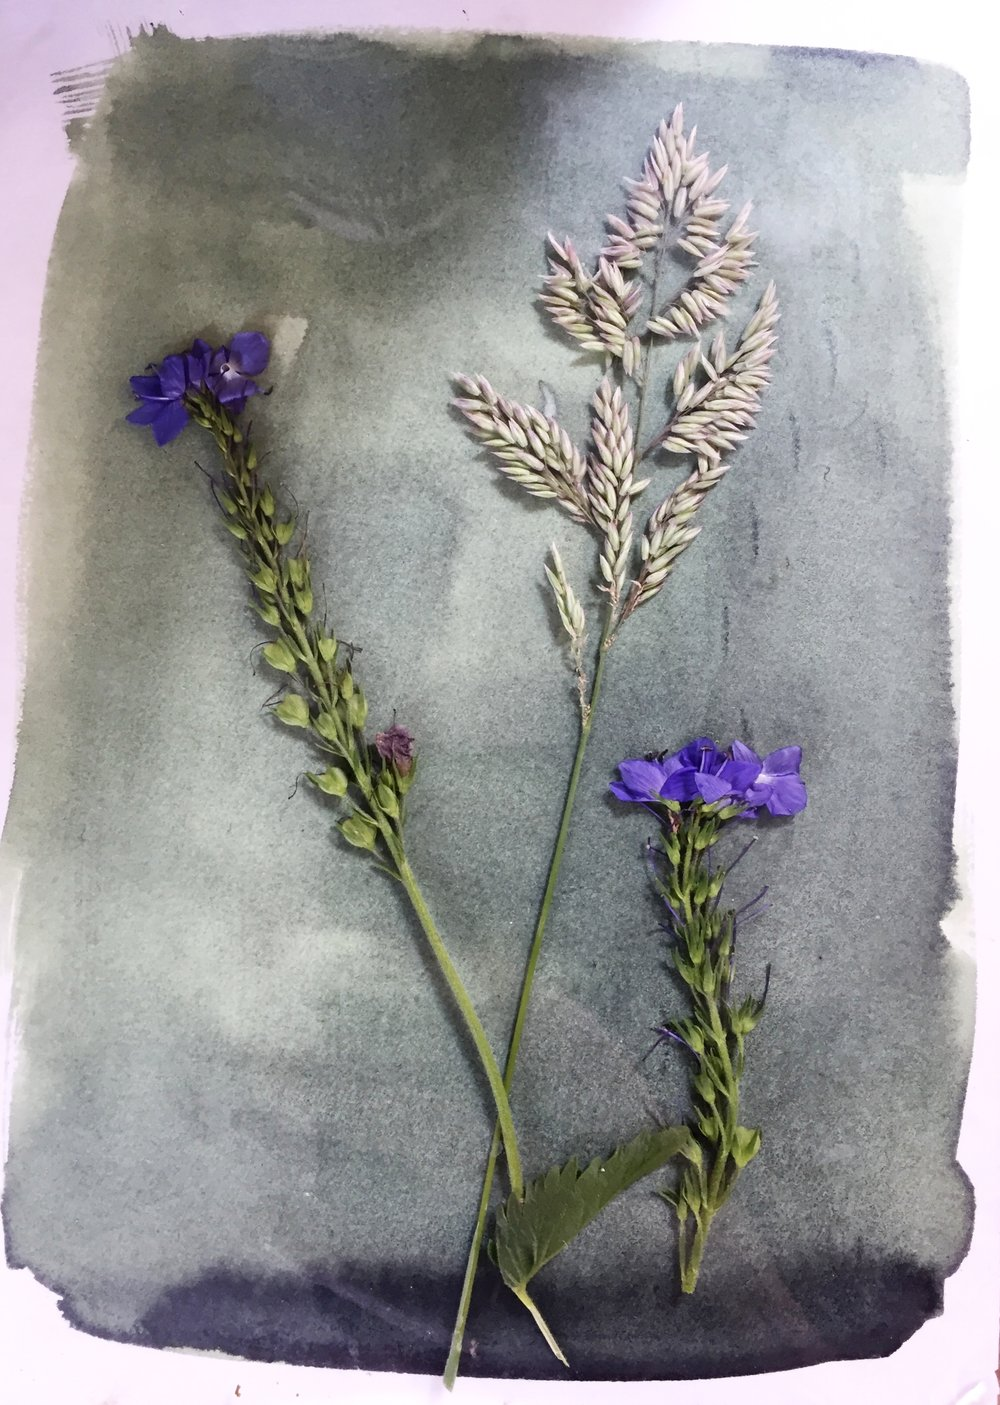 Mix chemicals to create a light sensitive solution